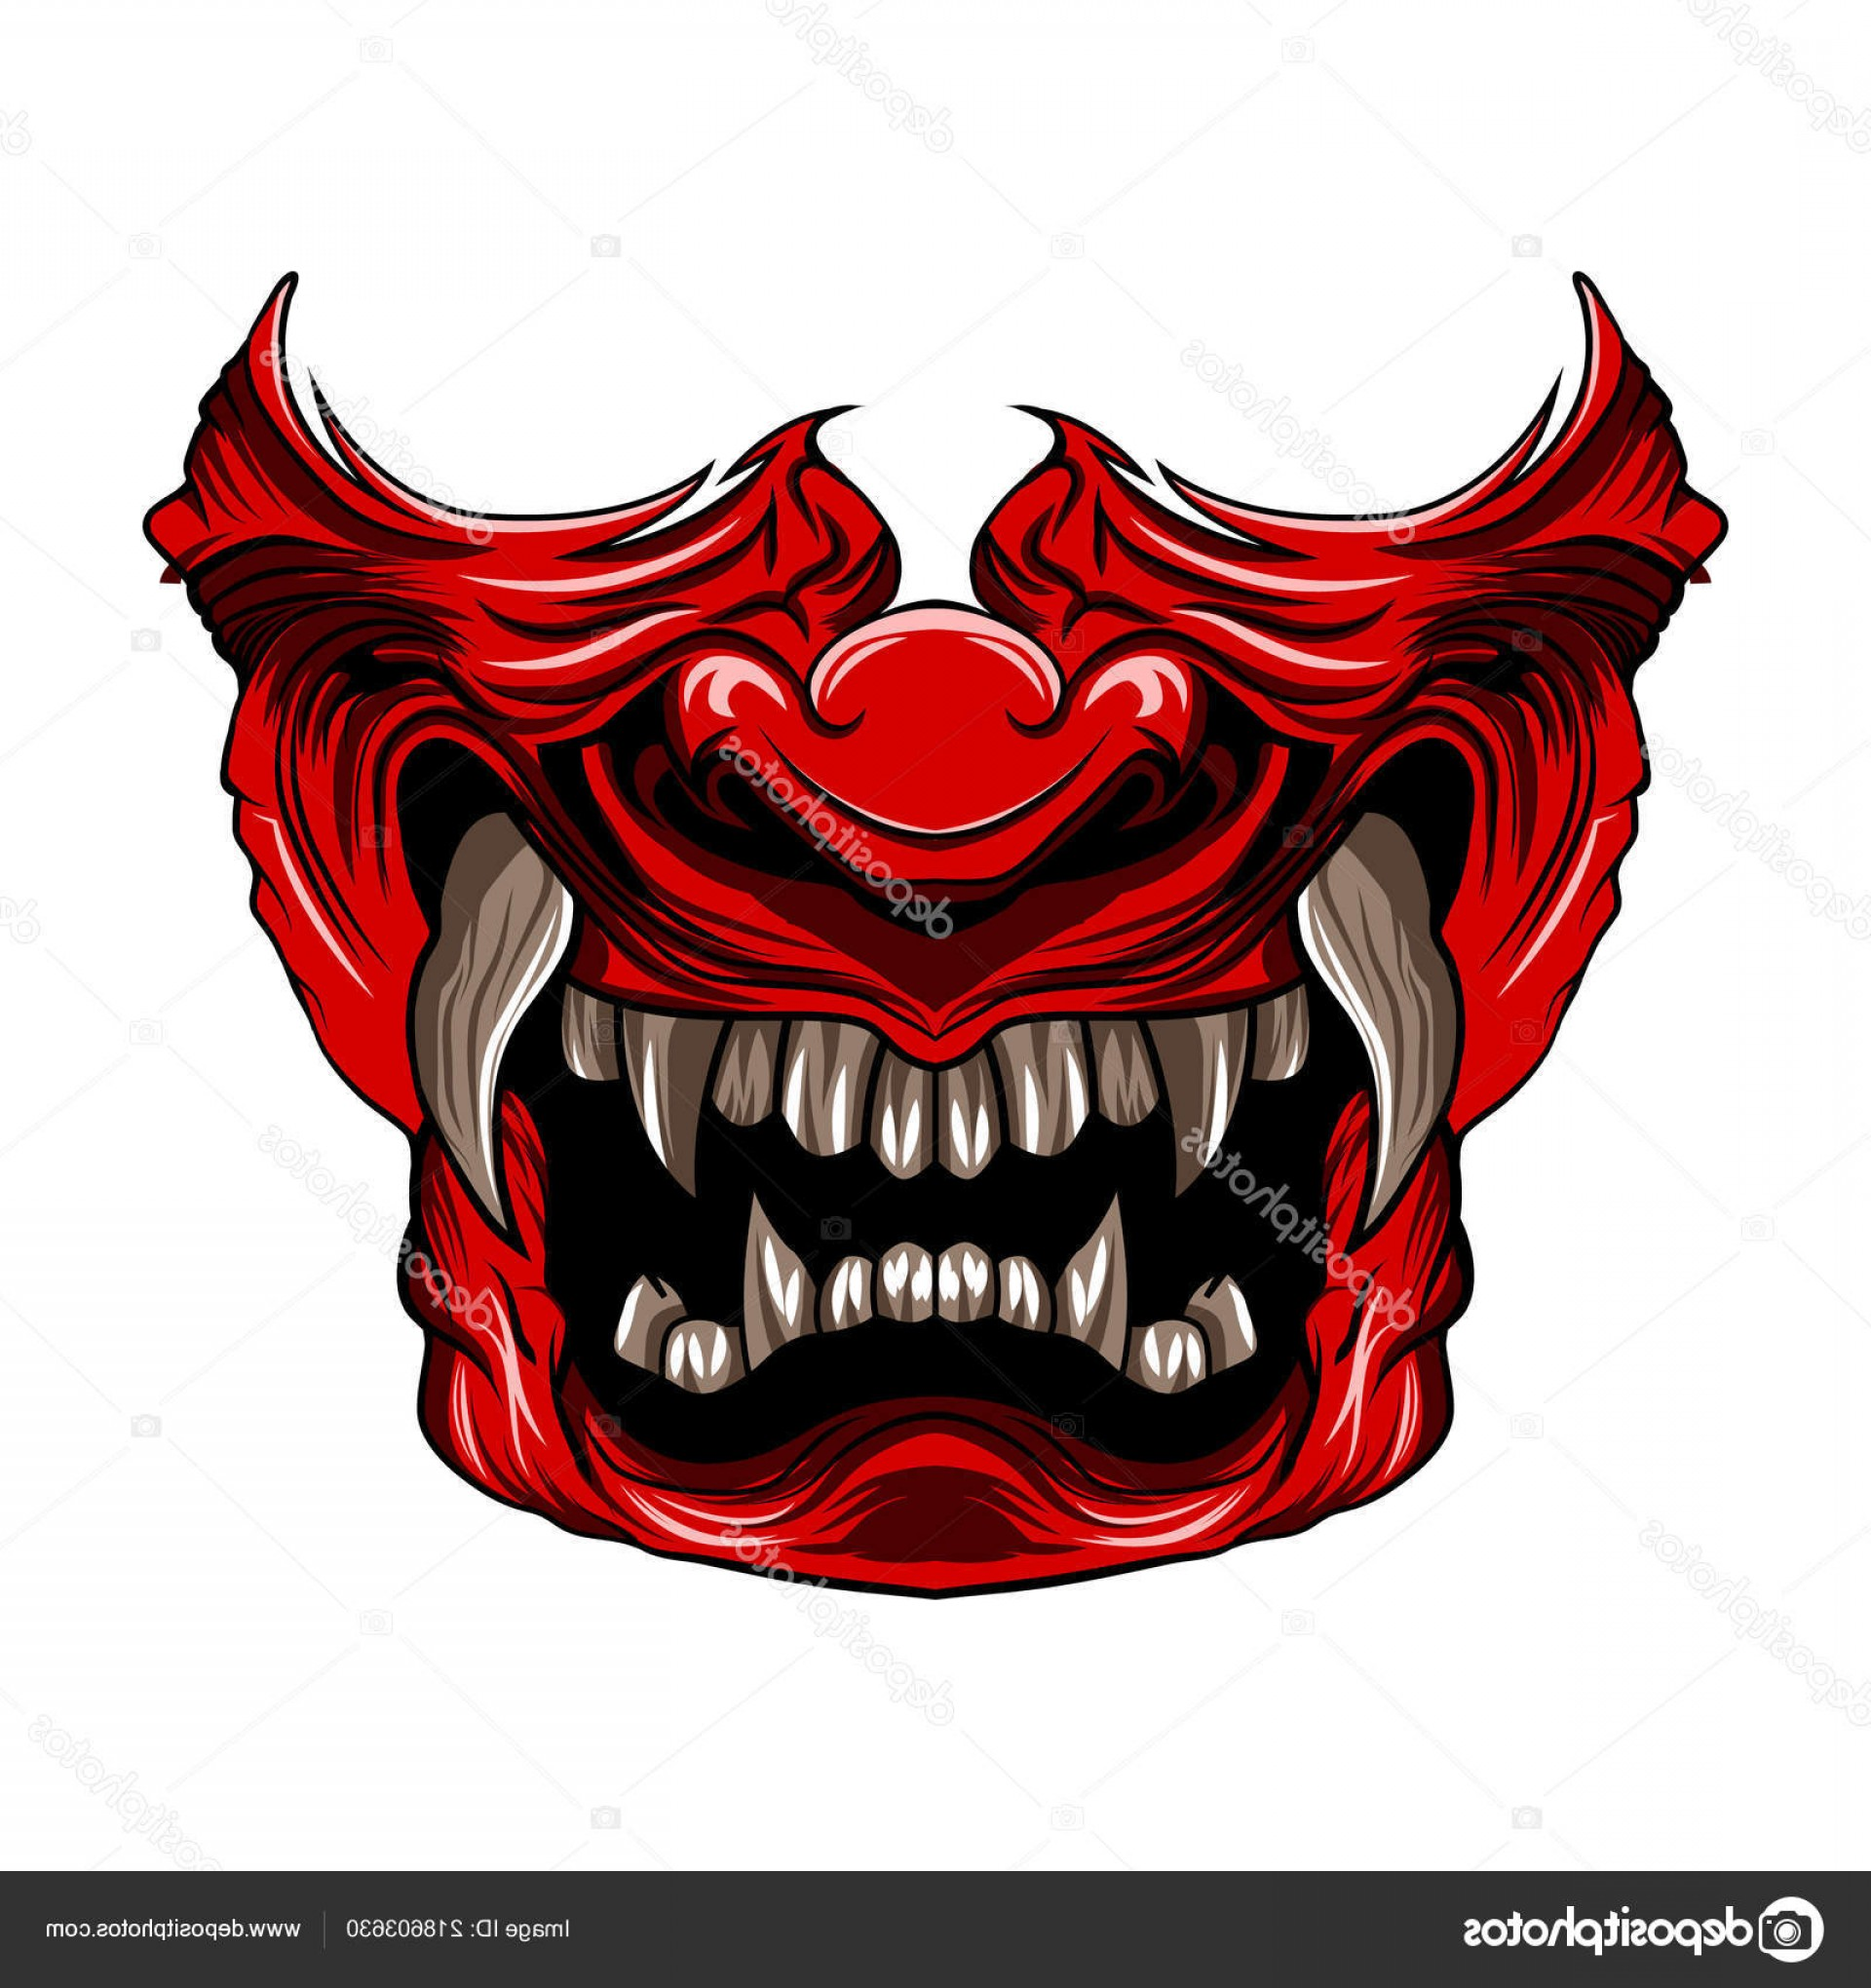 Red Samurai Vector: Stock Illustration Red Samurai Mask Vector Illustration